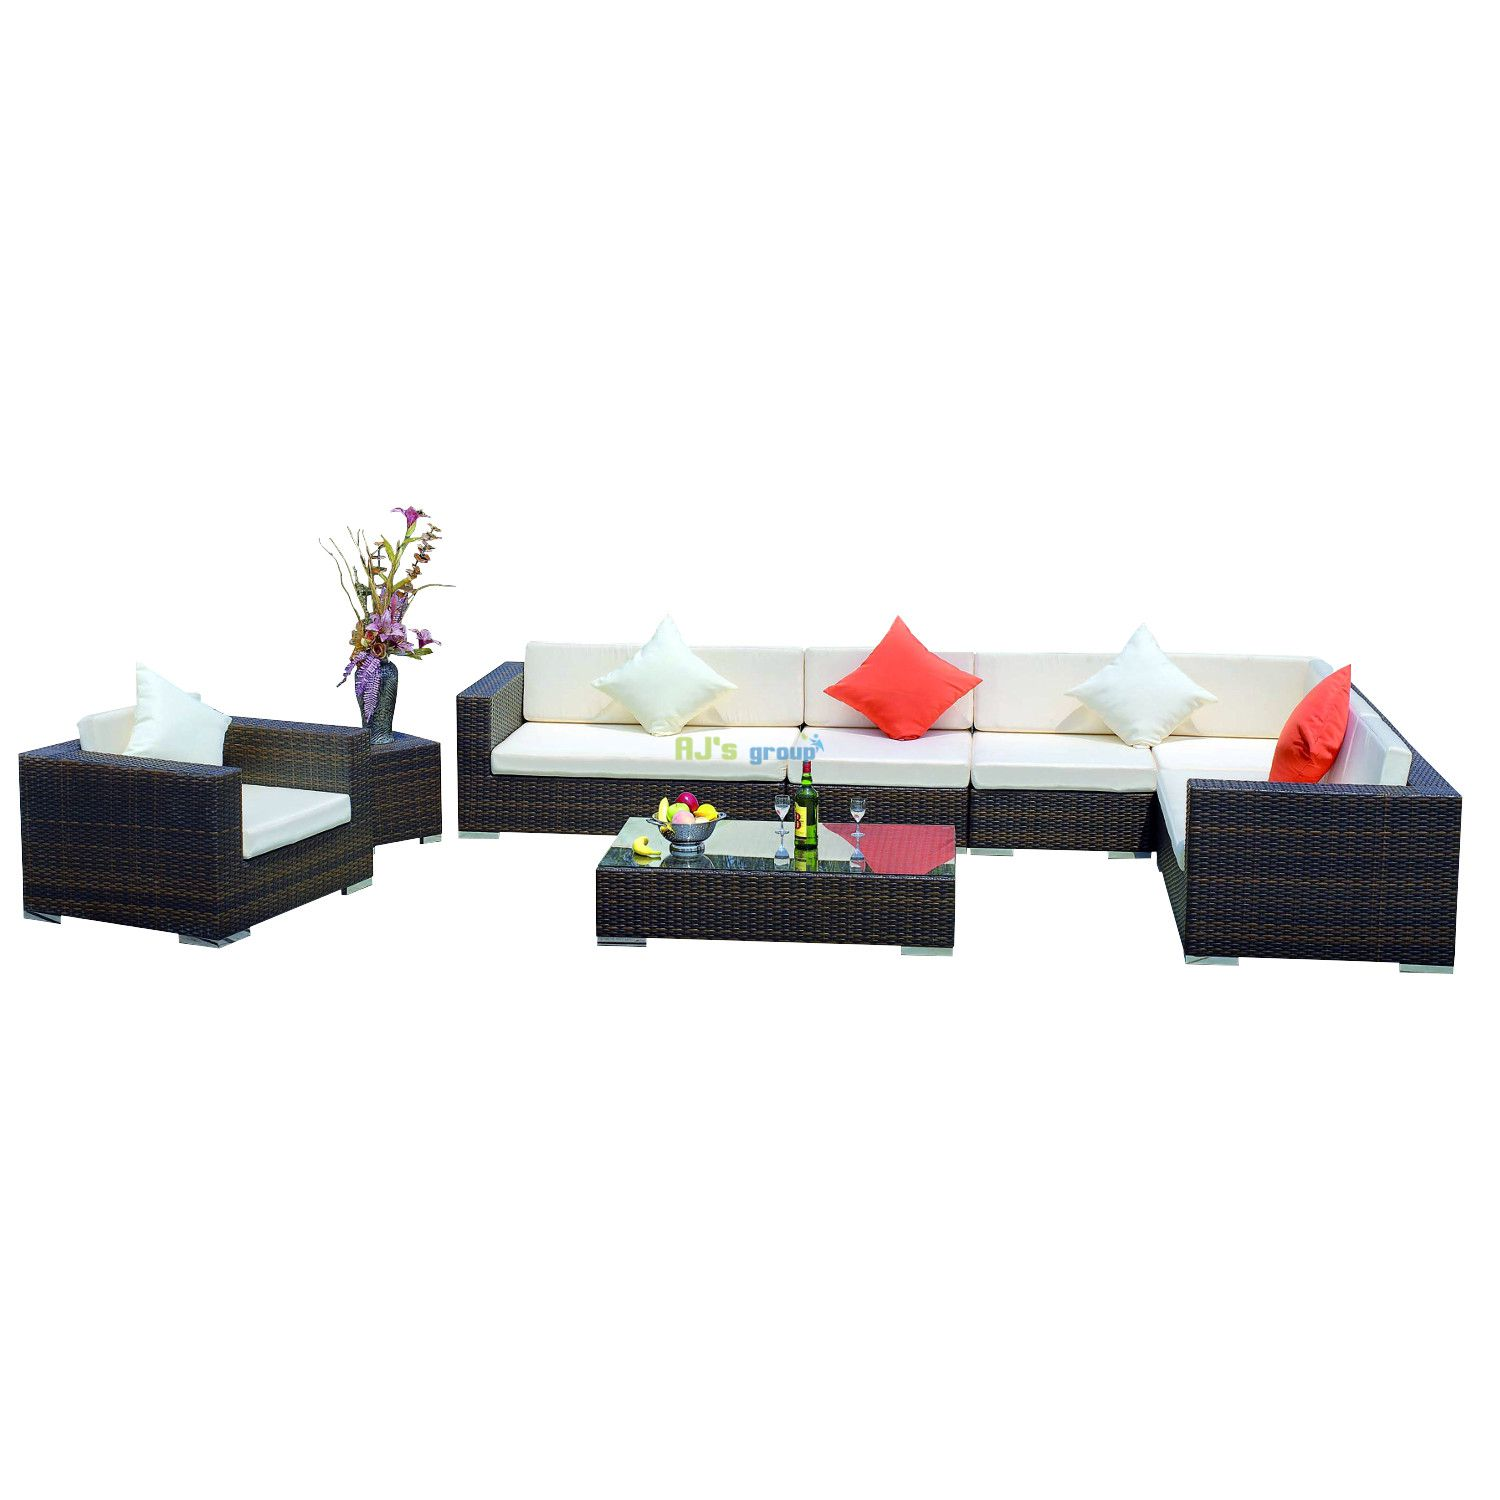 based on my own hands on experiences in italy and ukraine. Black Bedroom Furniture Sets. Home Design Ideas